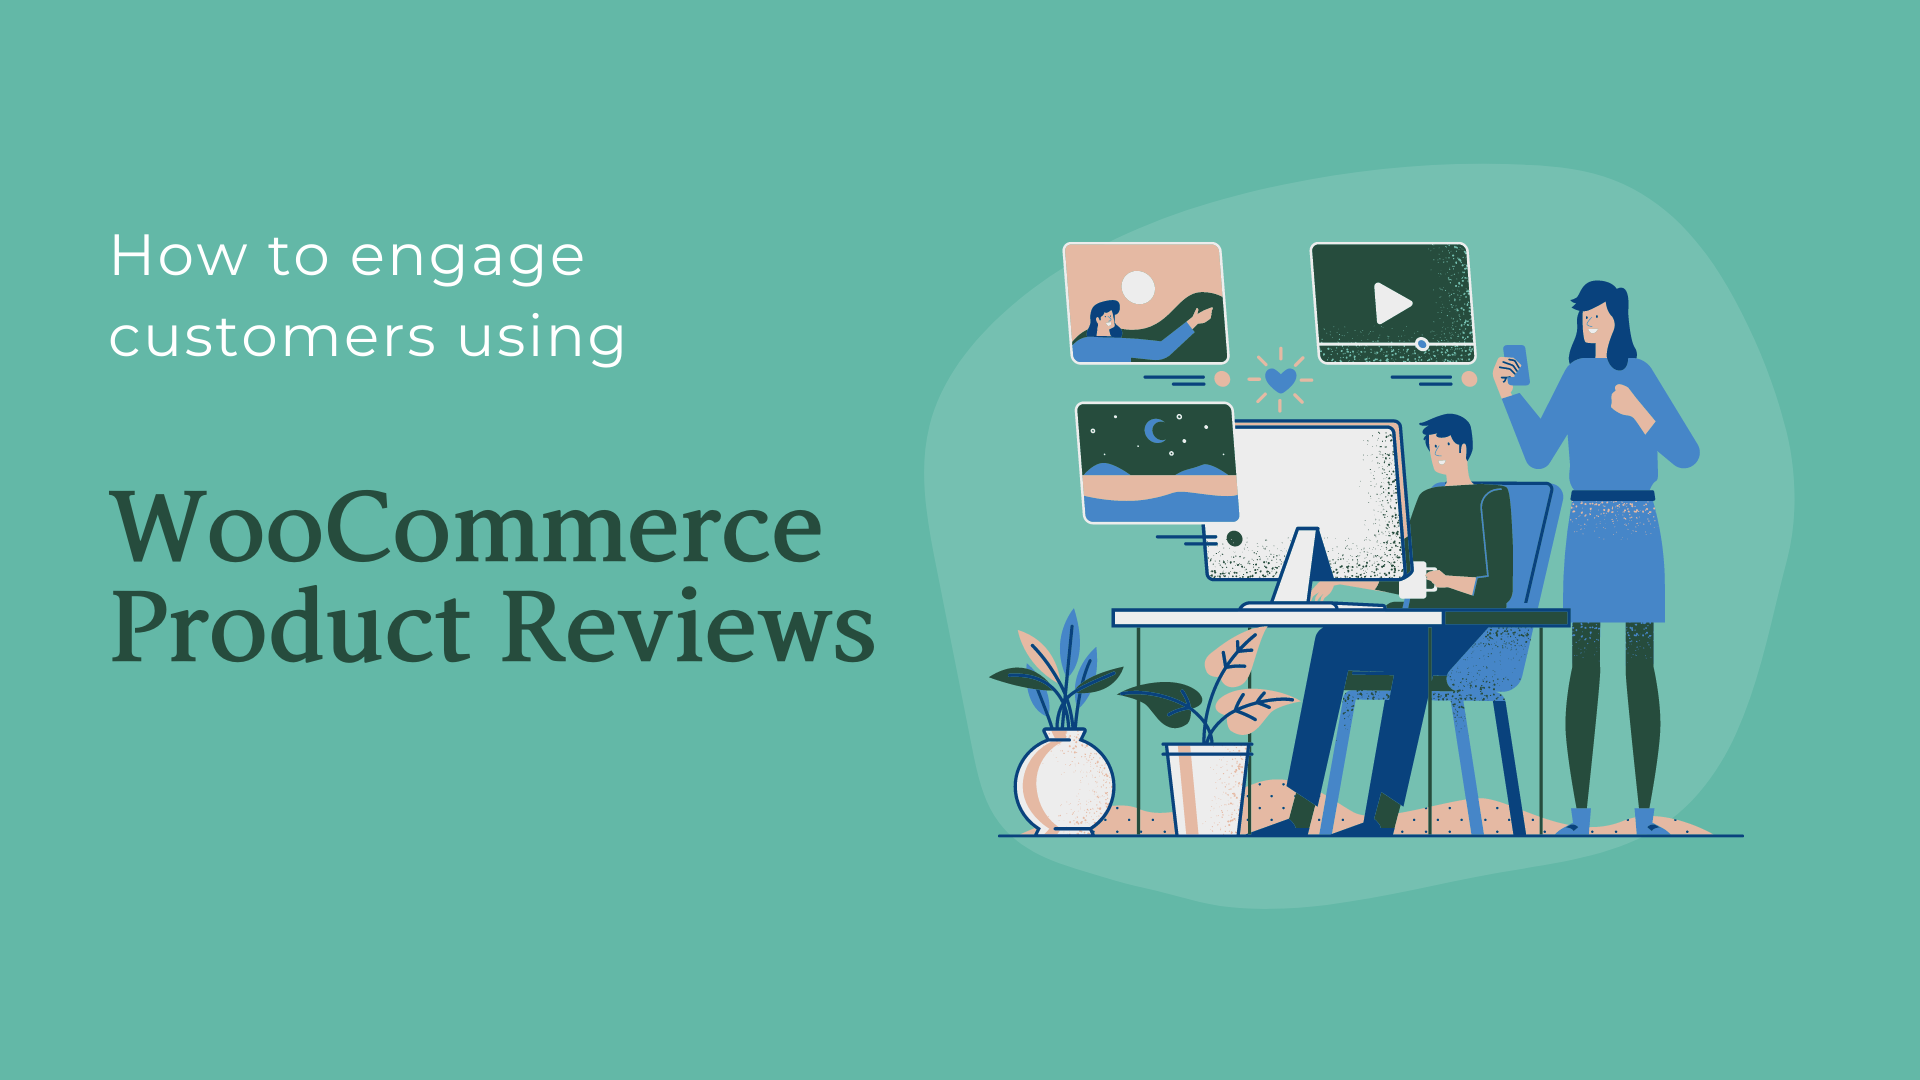 How to engage customers using WooCommerce product reviews